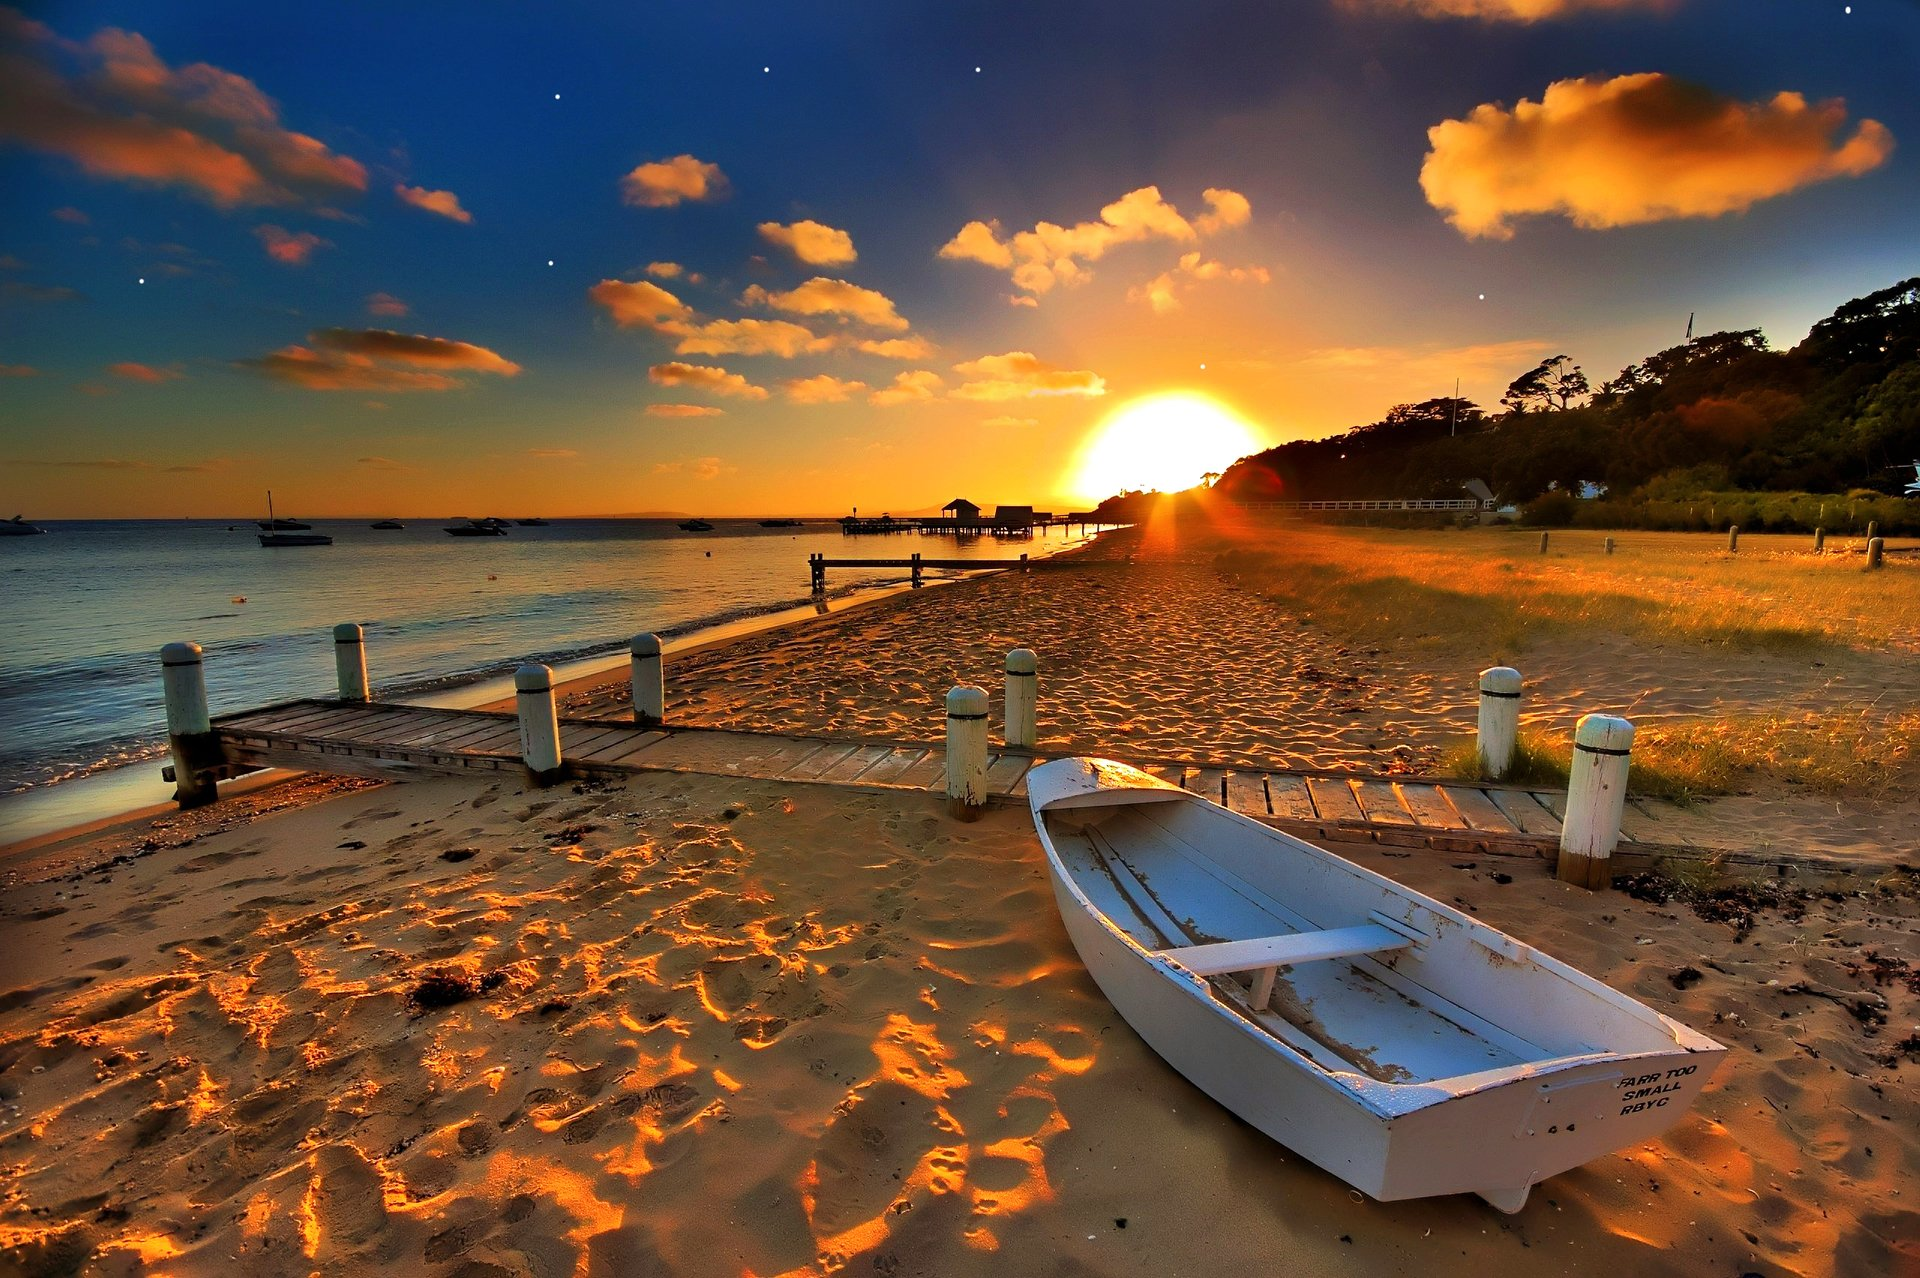 Photography - Beach  Landscape Scenic Vehicle Boat Sunset Sun Sand Pier Wallpaper